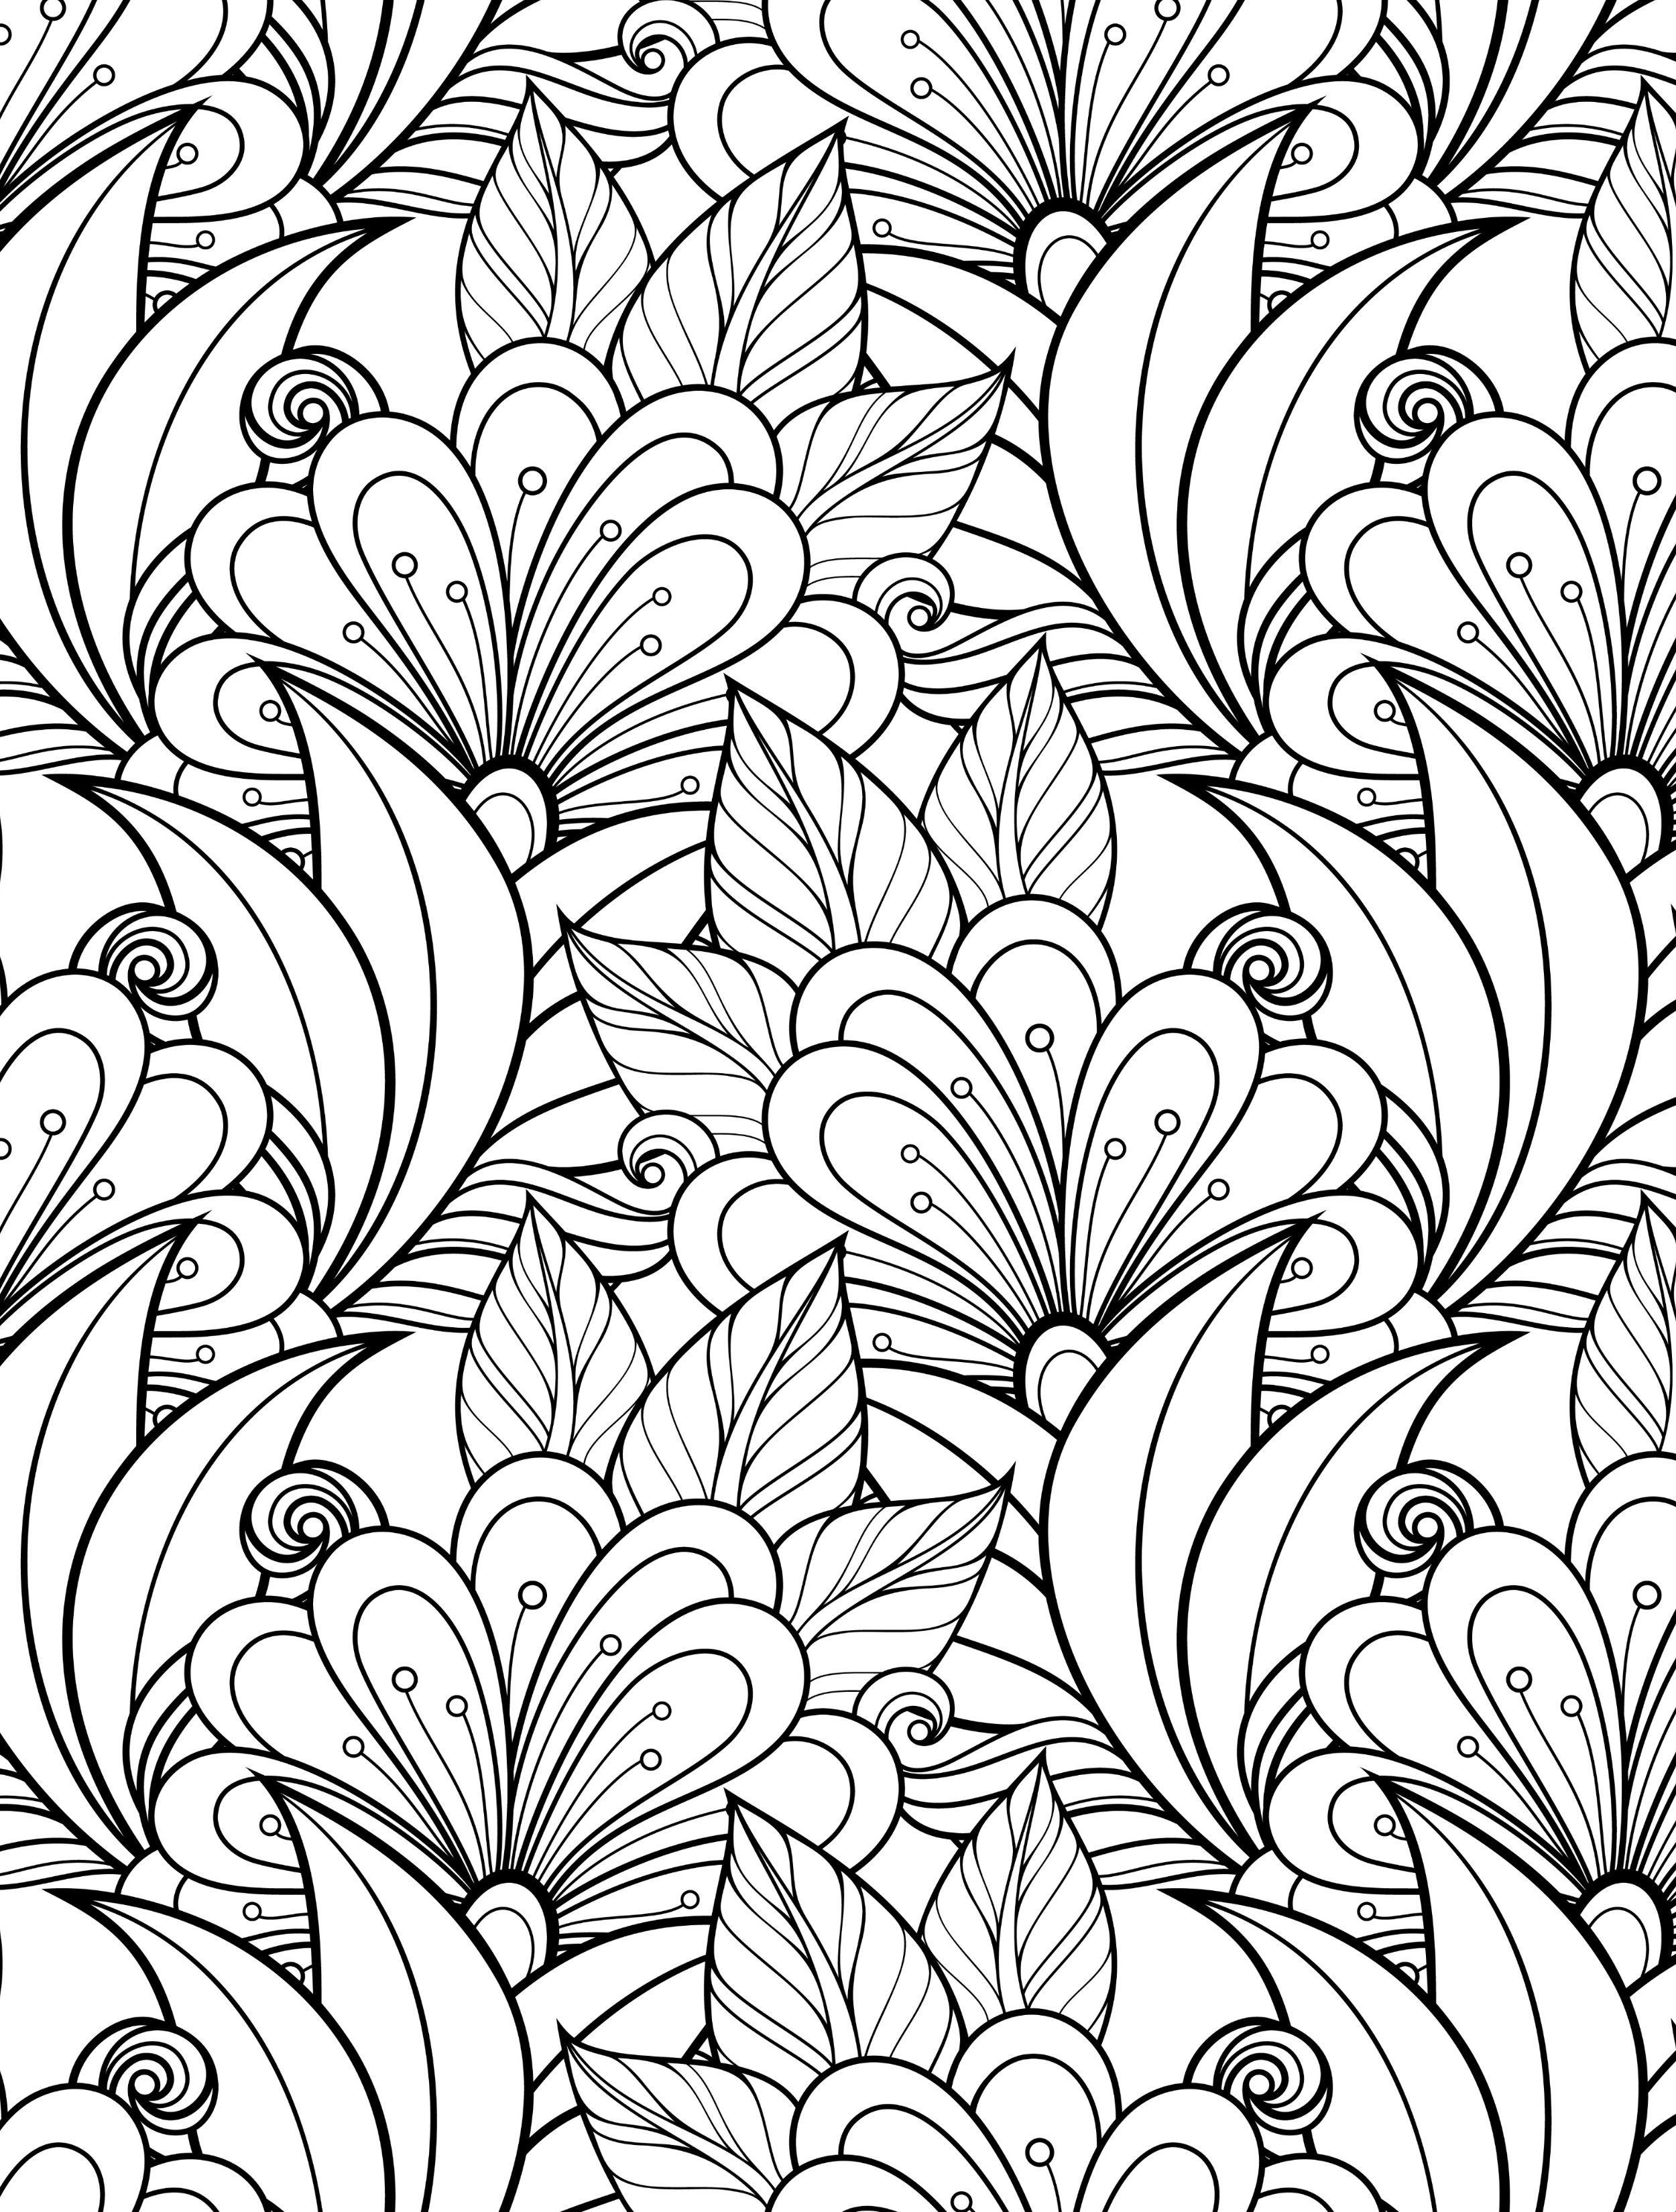 flower pattern coloring pages floral pattern coloring page free printable coloring pages coloring pages pattern flower